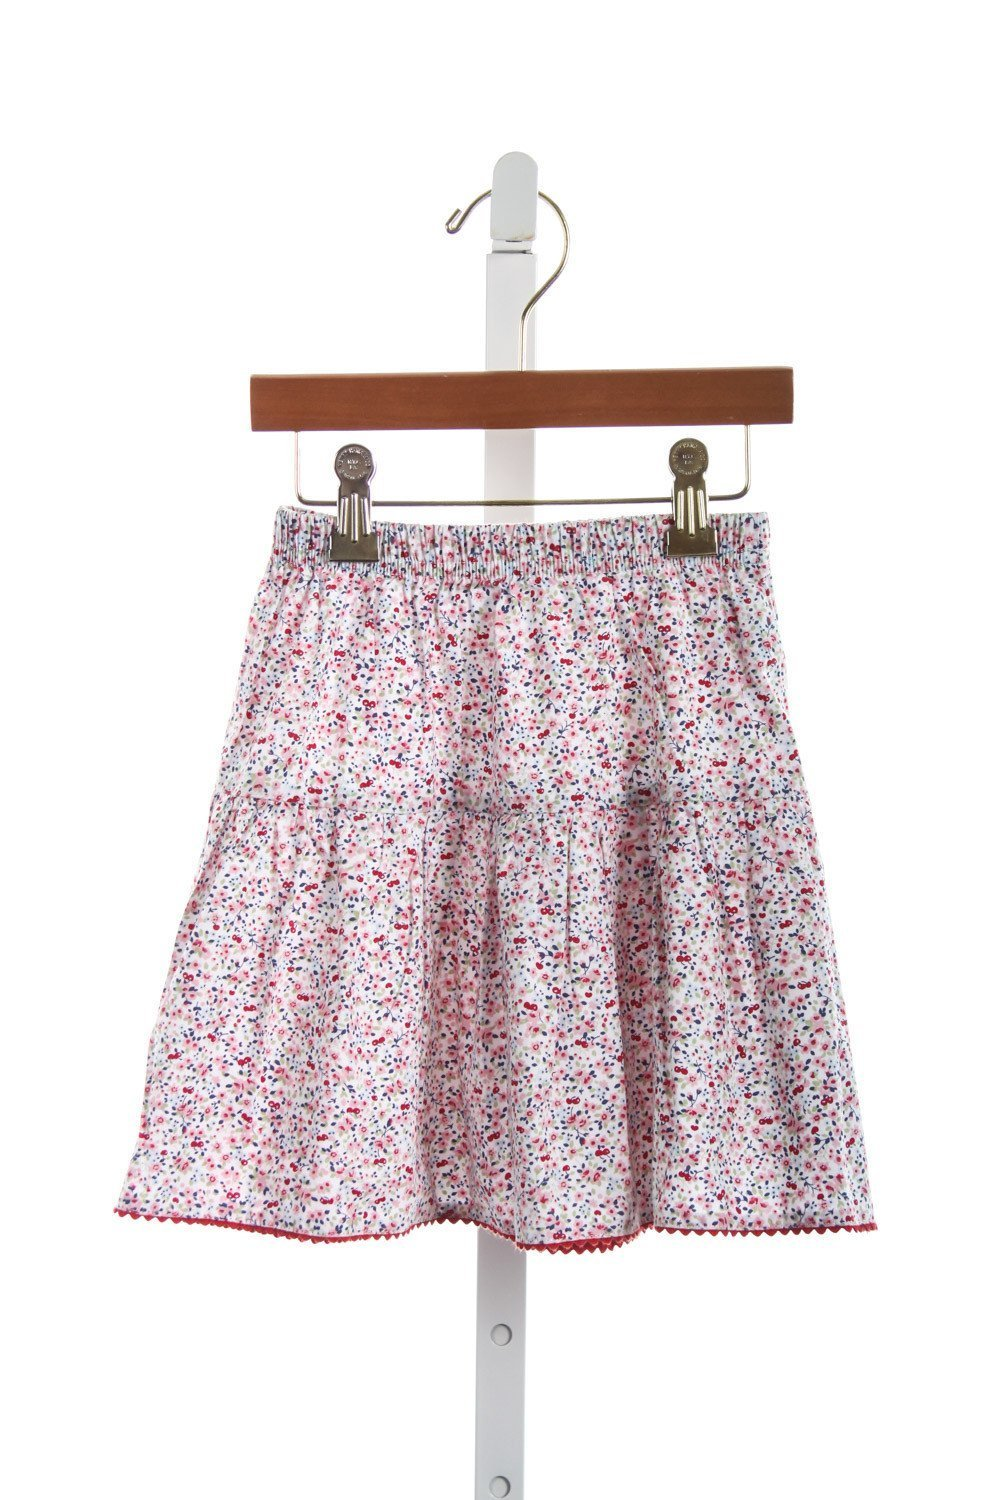 KATE & LIBBY RED CHERRY FLORAL PEASANT SKIRT WITH TINY RED RIC RAC